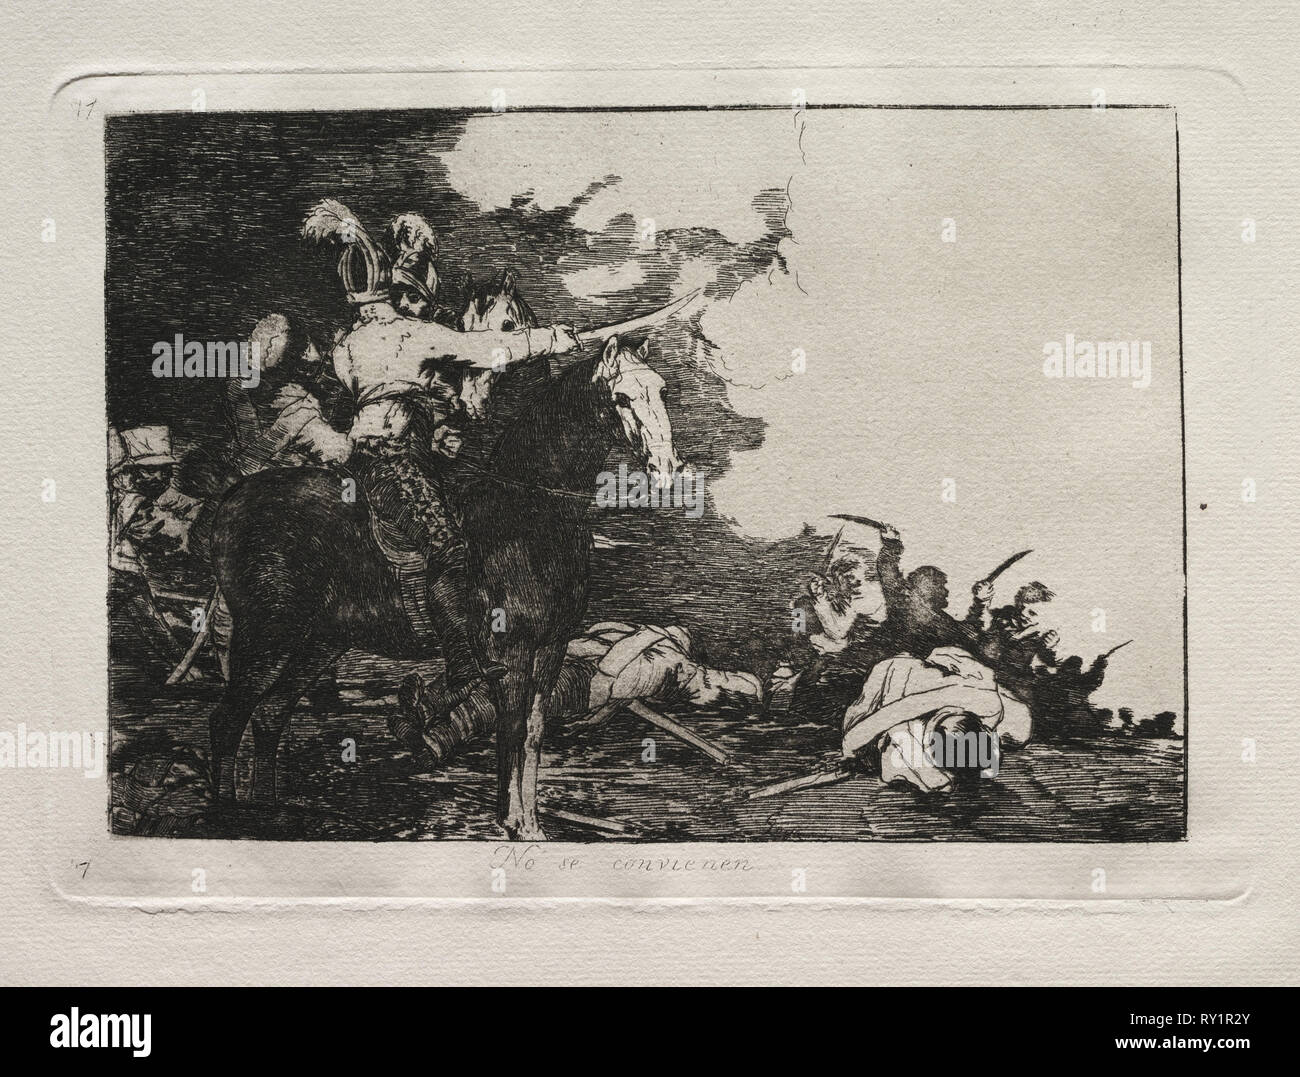 The Horrors of War:  They Do Not Agree. Francisco de Goya (Spanish, 1746-1828). Etching Stock Photo